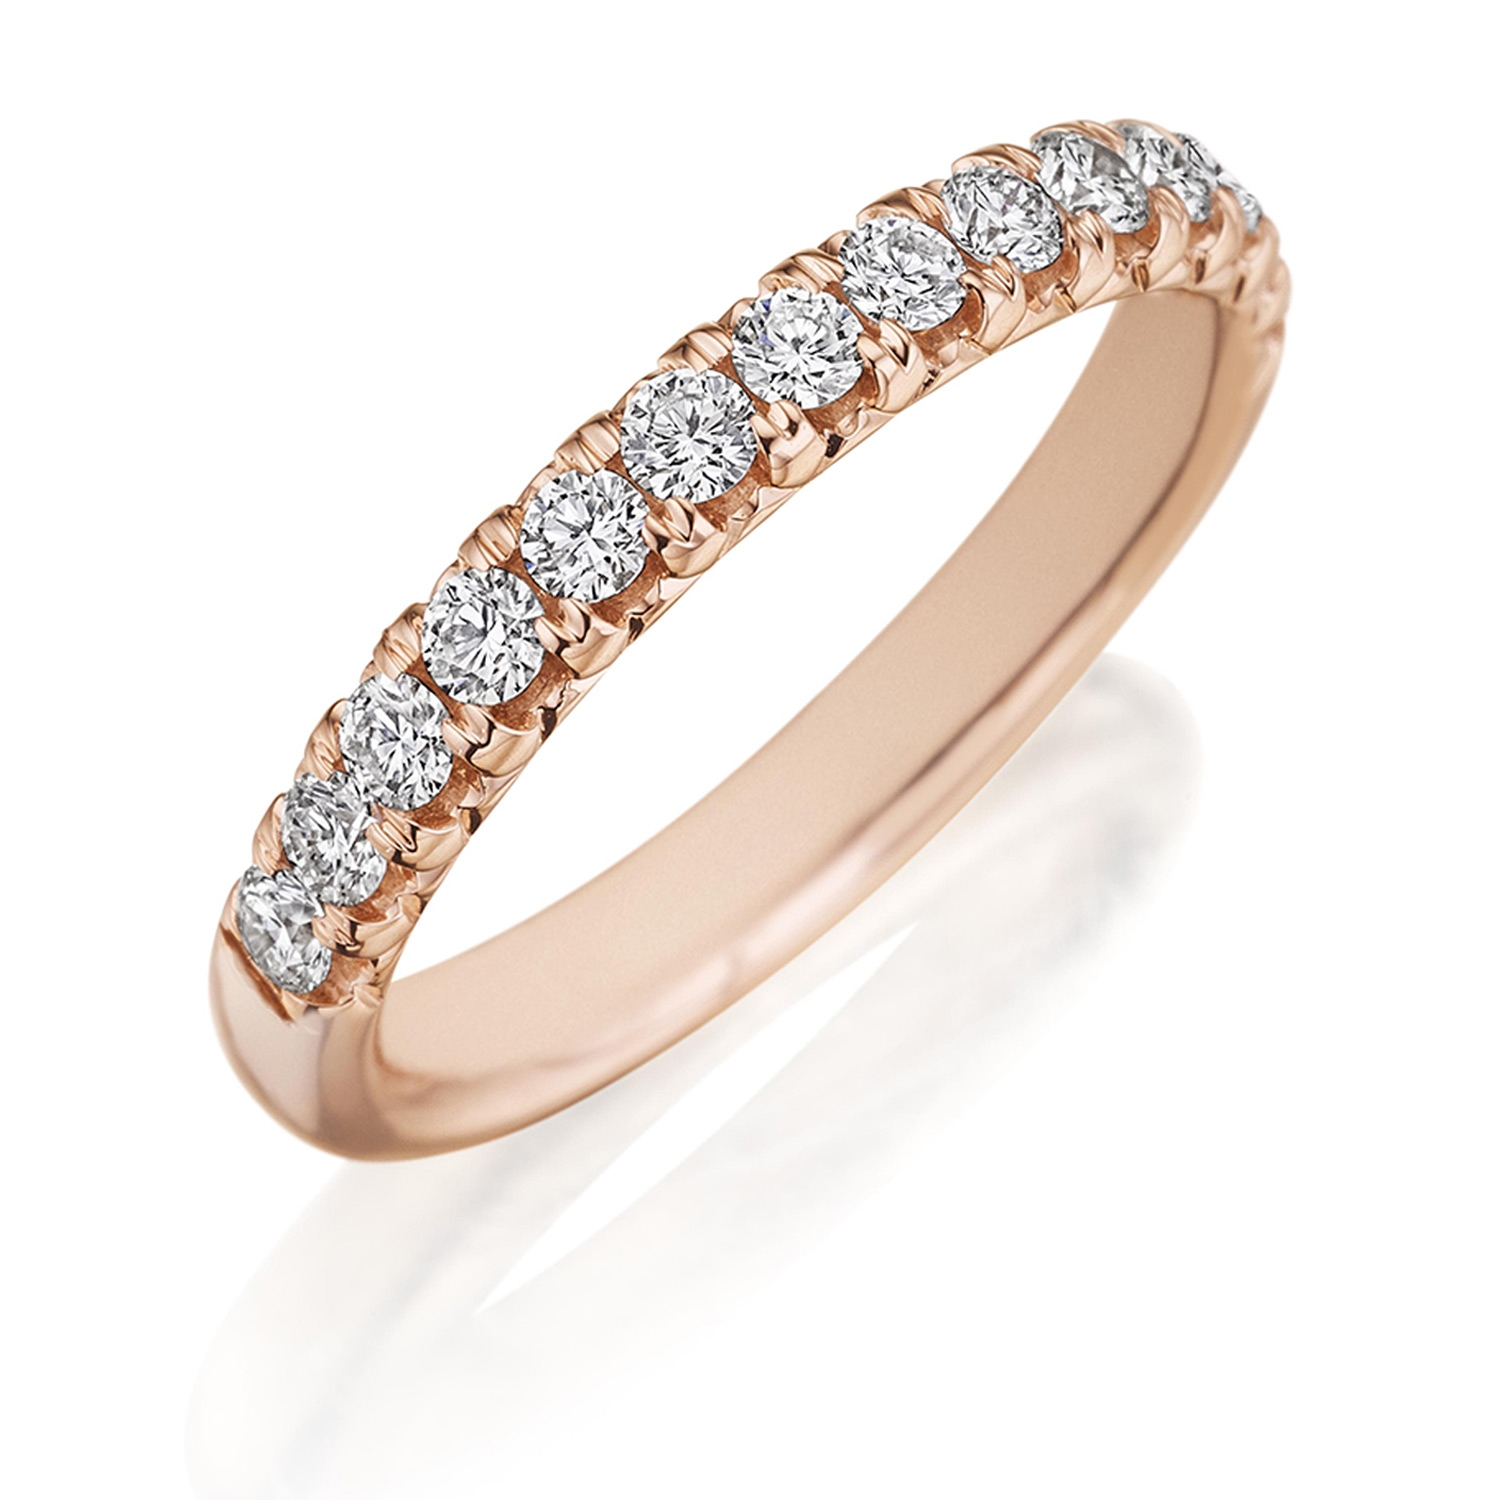 passionvine with band products rose and shop passion in estell love bands ring gold diamonds diamond estella